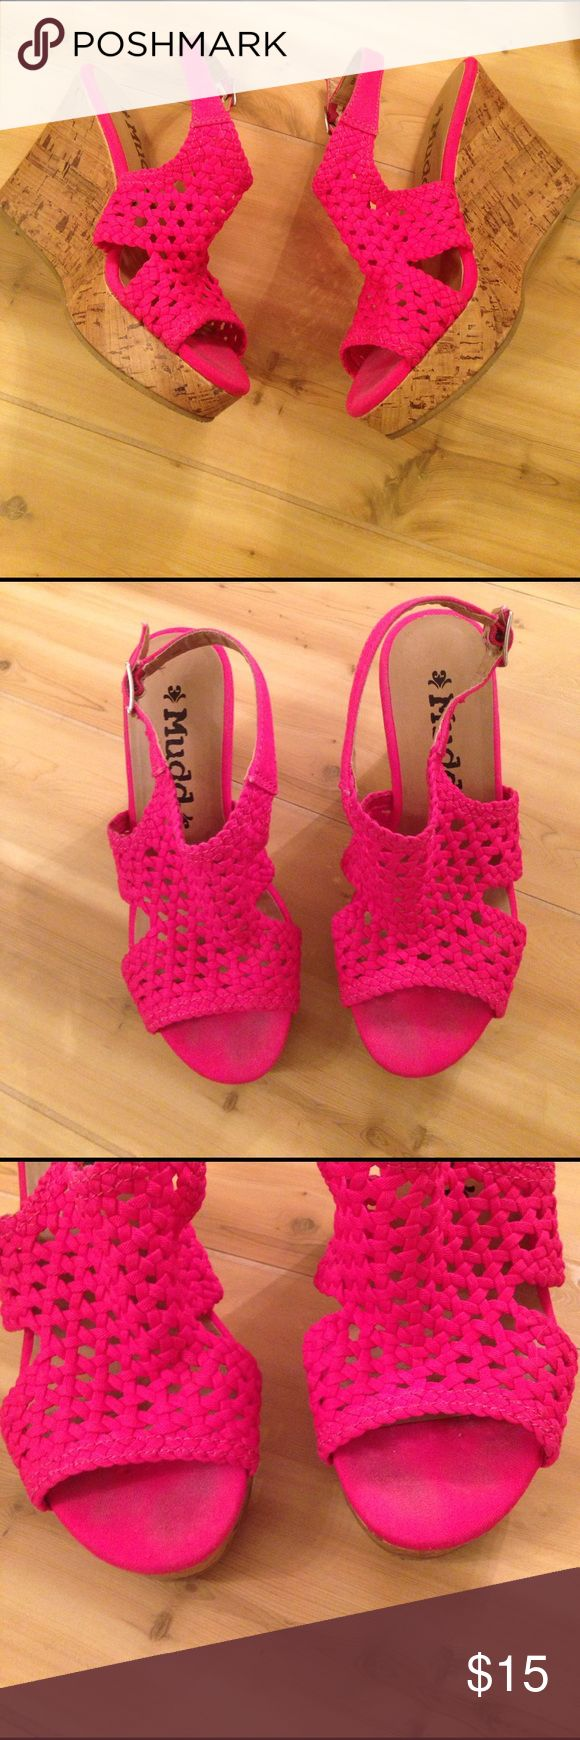 Mudd Carnival Wedge Heels Amazing Mudd carnival hot pink crochet wedges. These are used, but still have a lot of life left! Please see all pictures and ask questions if you have them. Size 6M Mudd Shoes Wedges